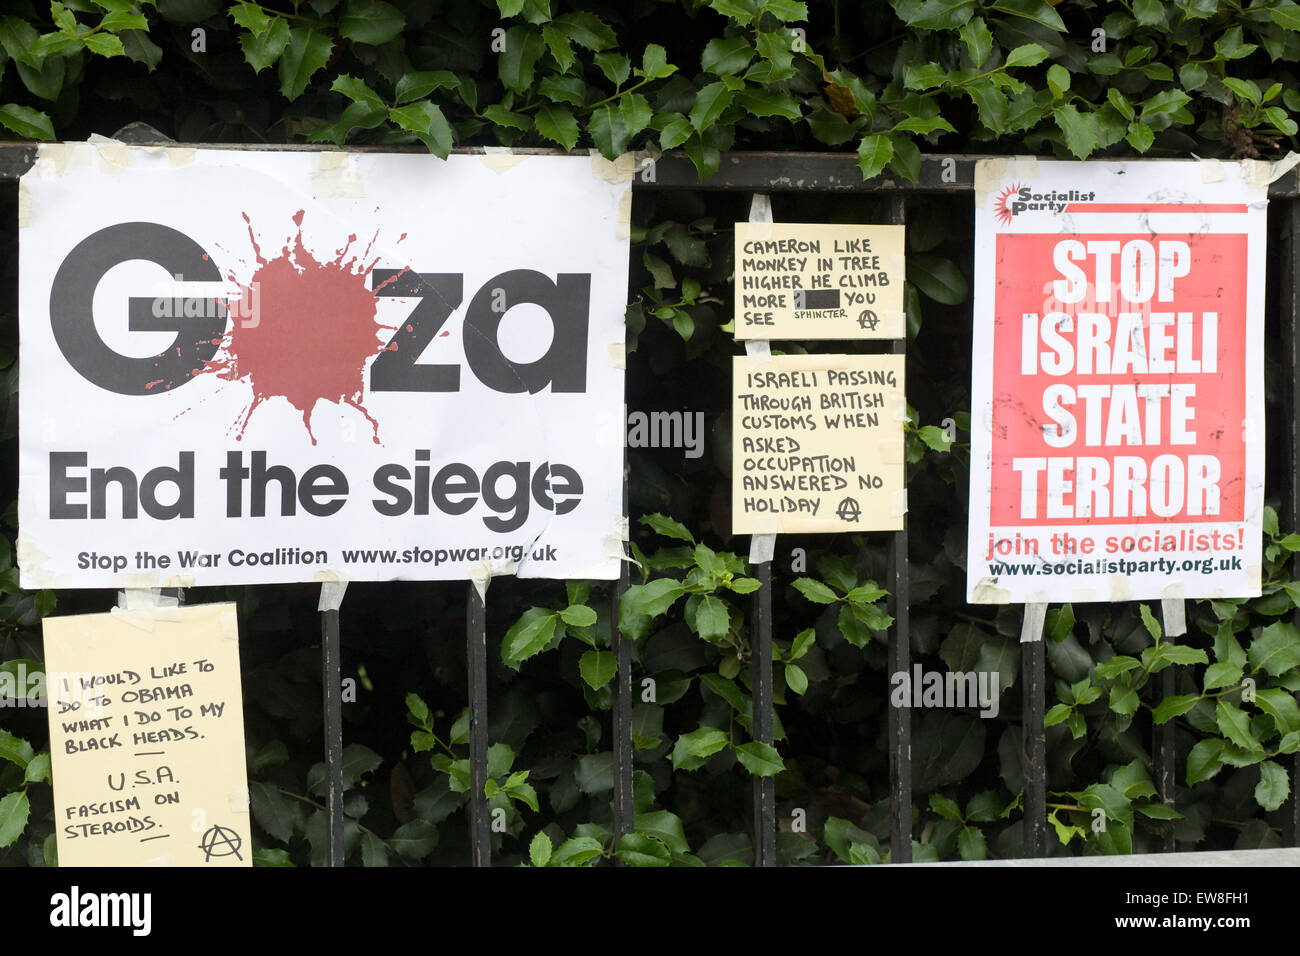 Stop the war Crimes against Gaza and Palestine posters attached to railing in London - Stock Image